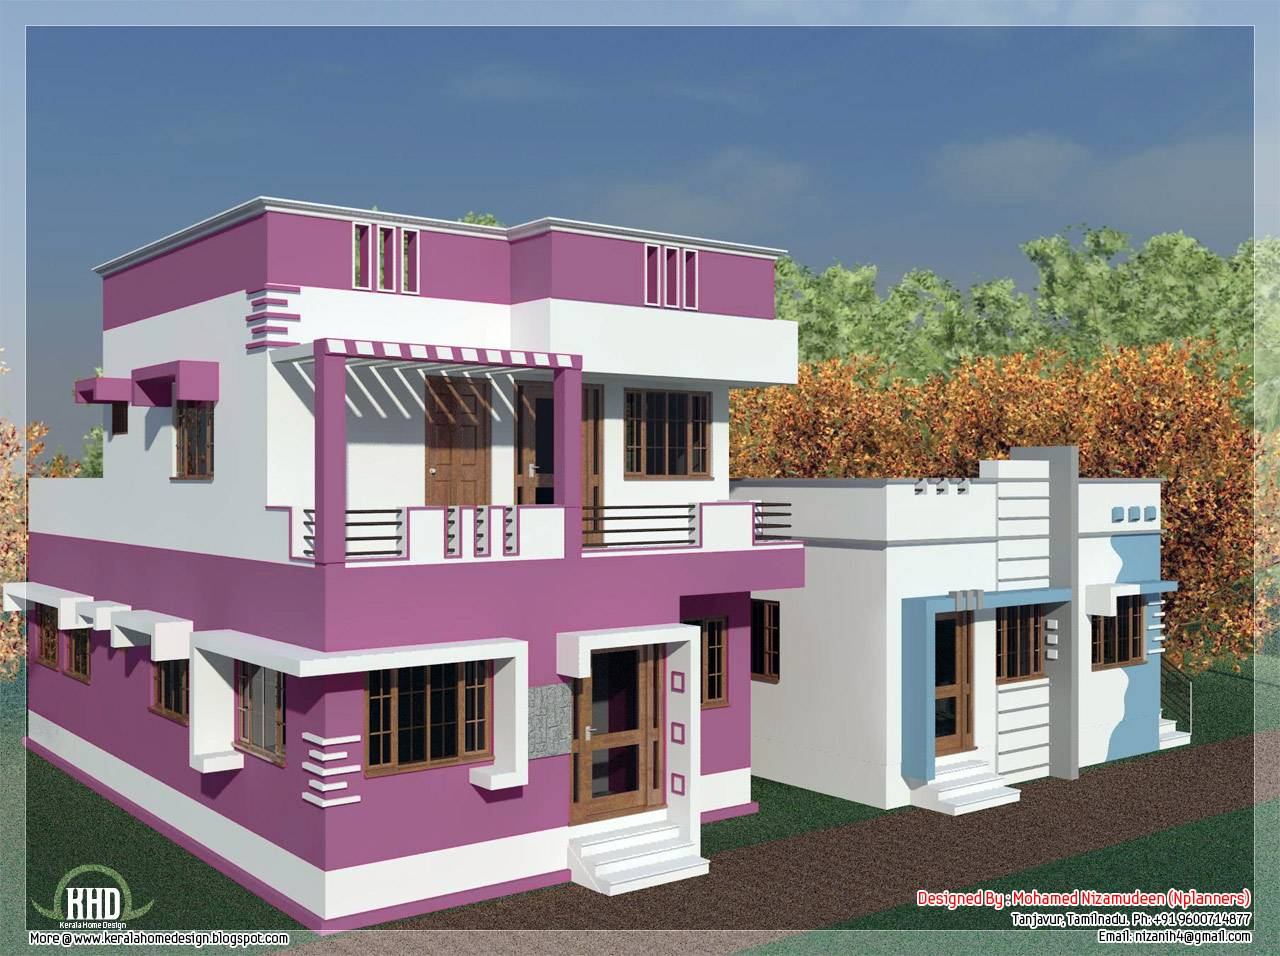 Awesome Indian Simple Home Design Plans Photos - Interior Design ...